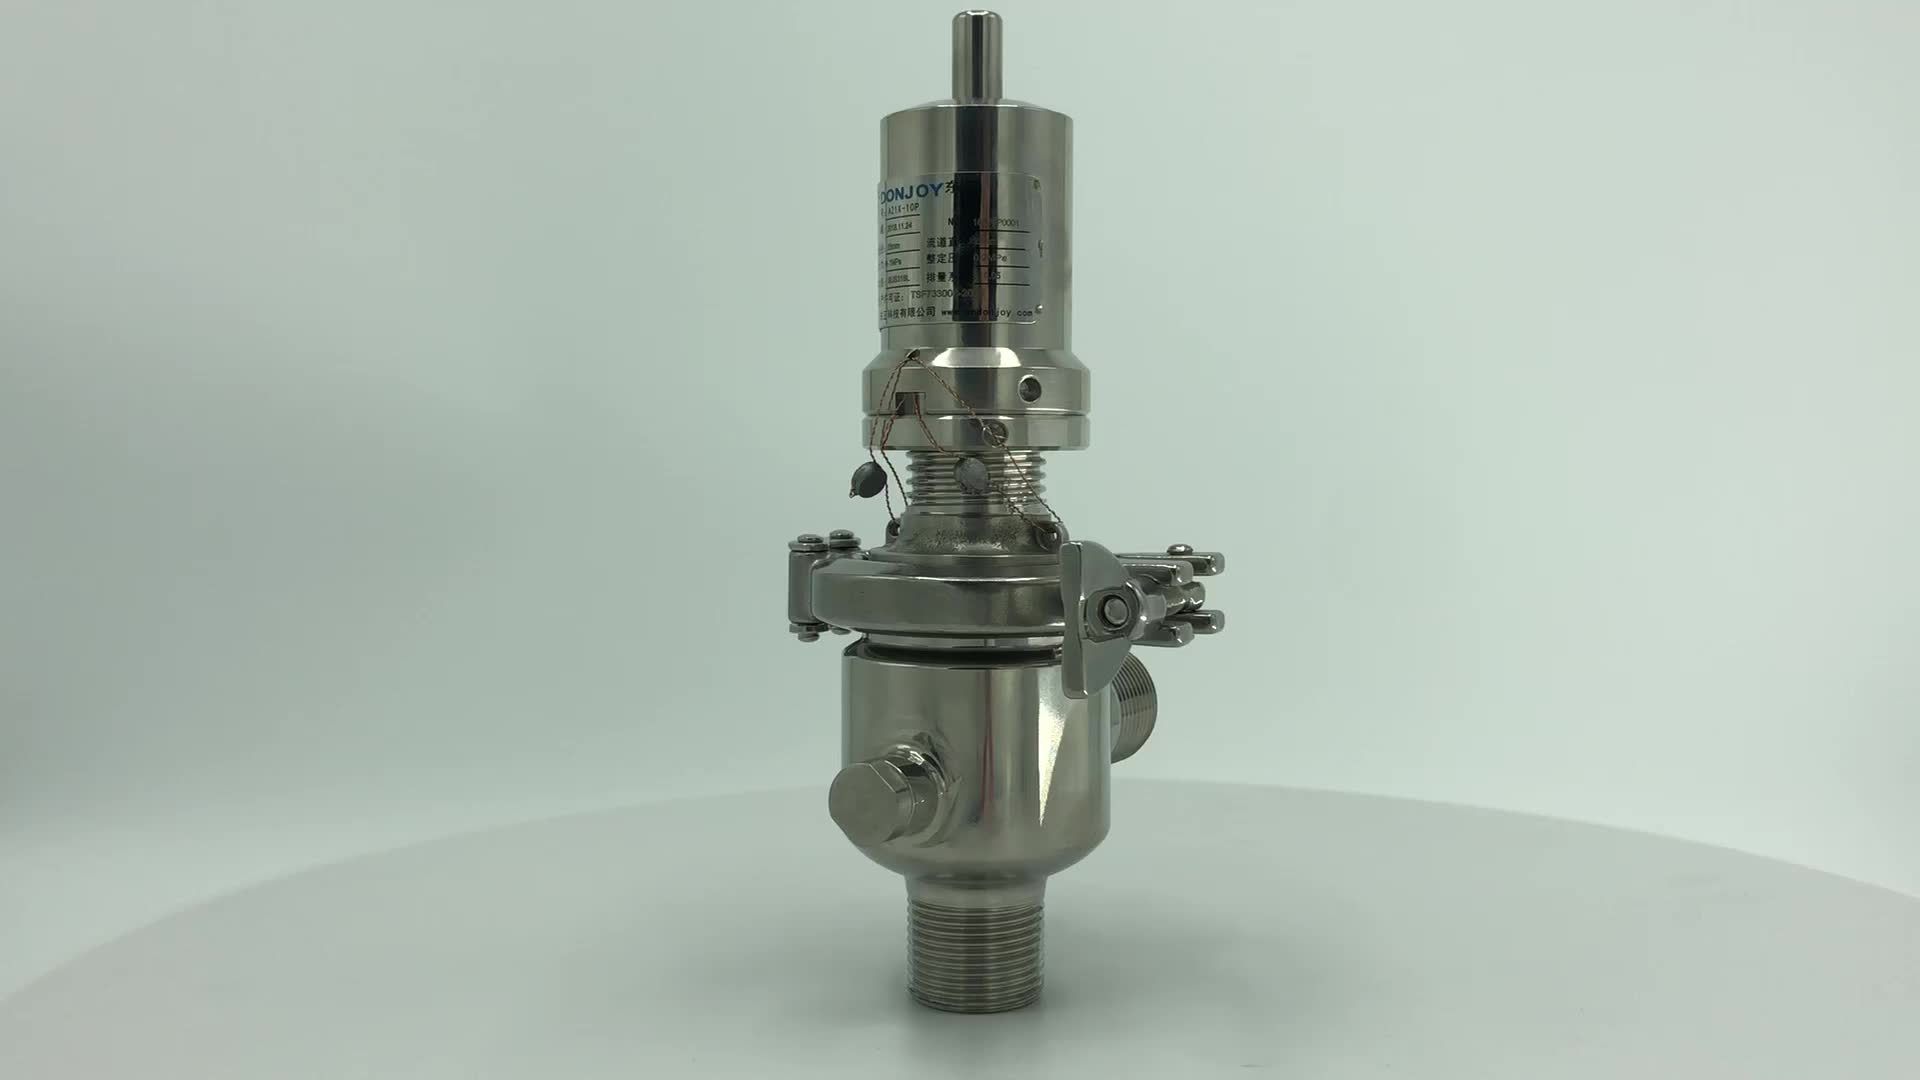 DONJOY pressure control technology stainless steel pressure reducing valve